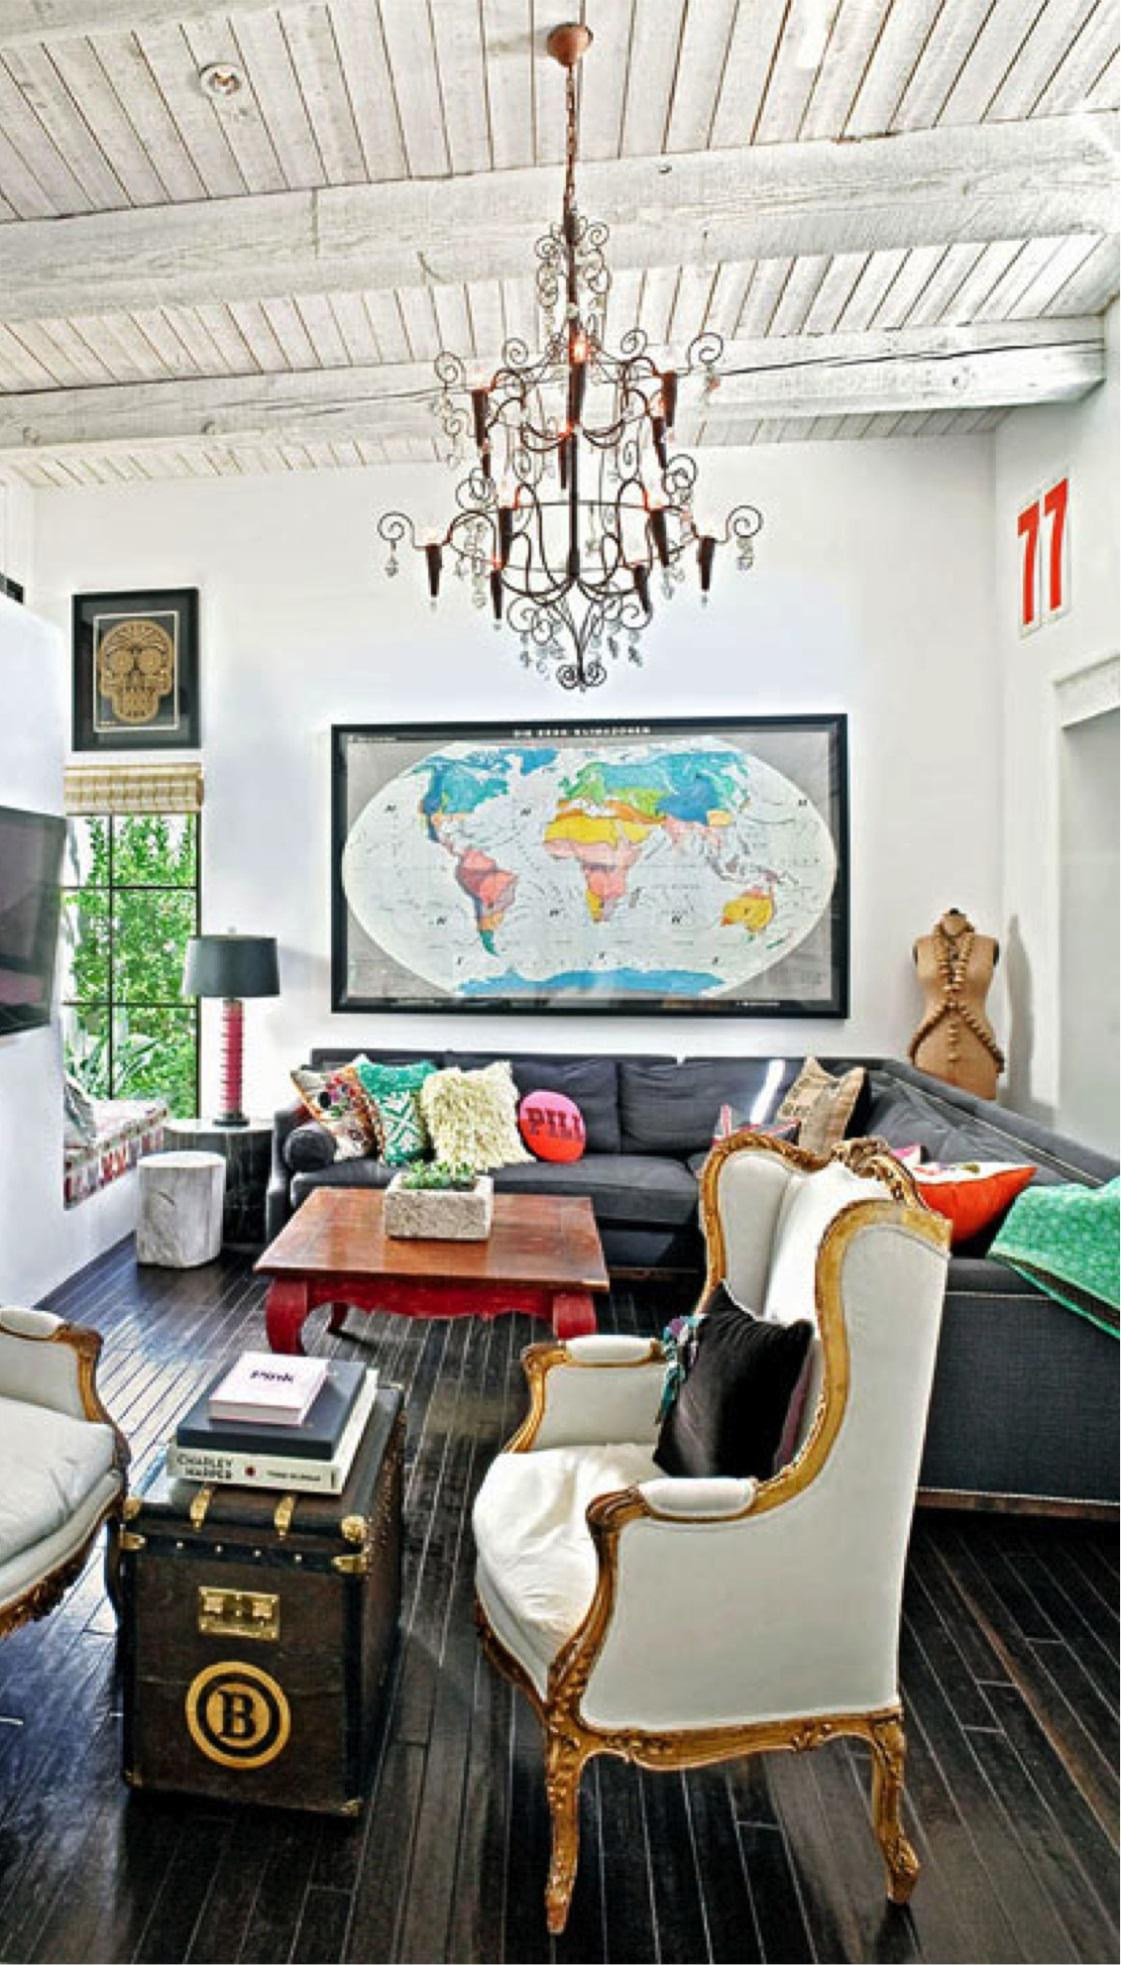 Eclectic Dcor Blending Antique And Modern Items